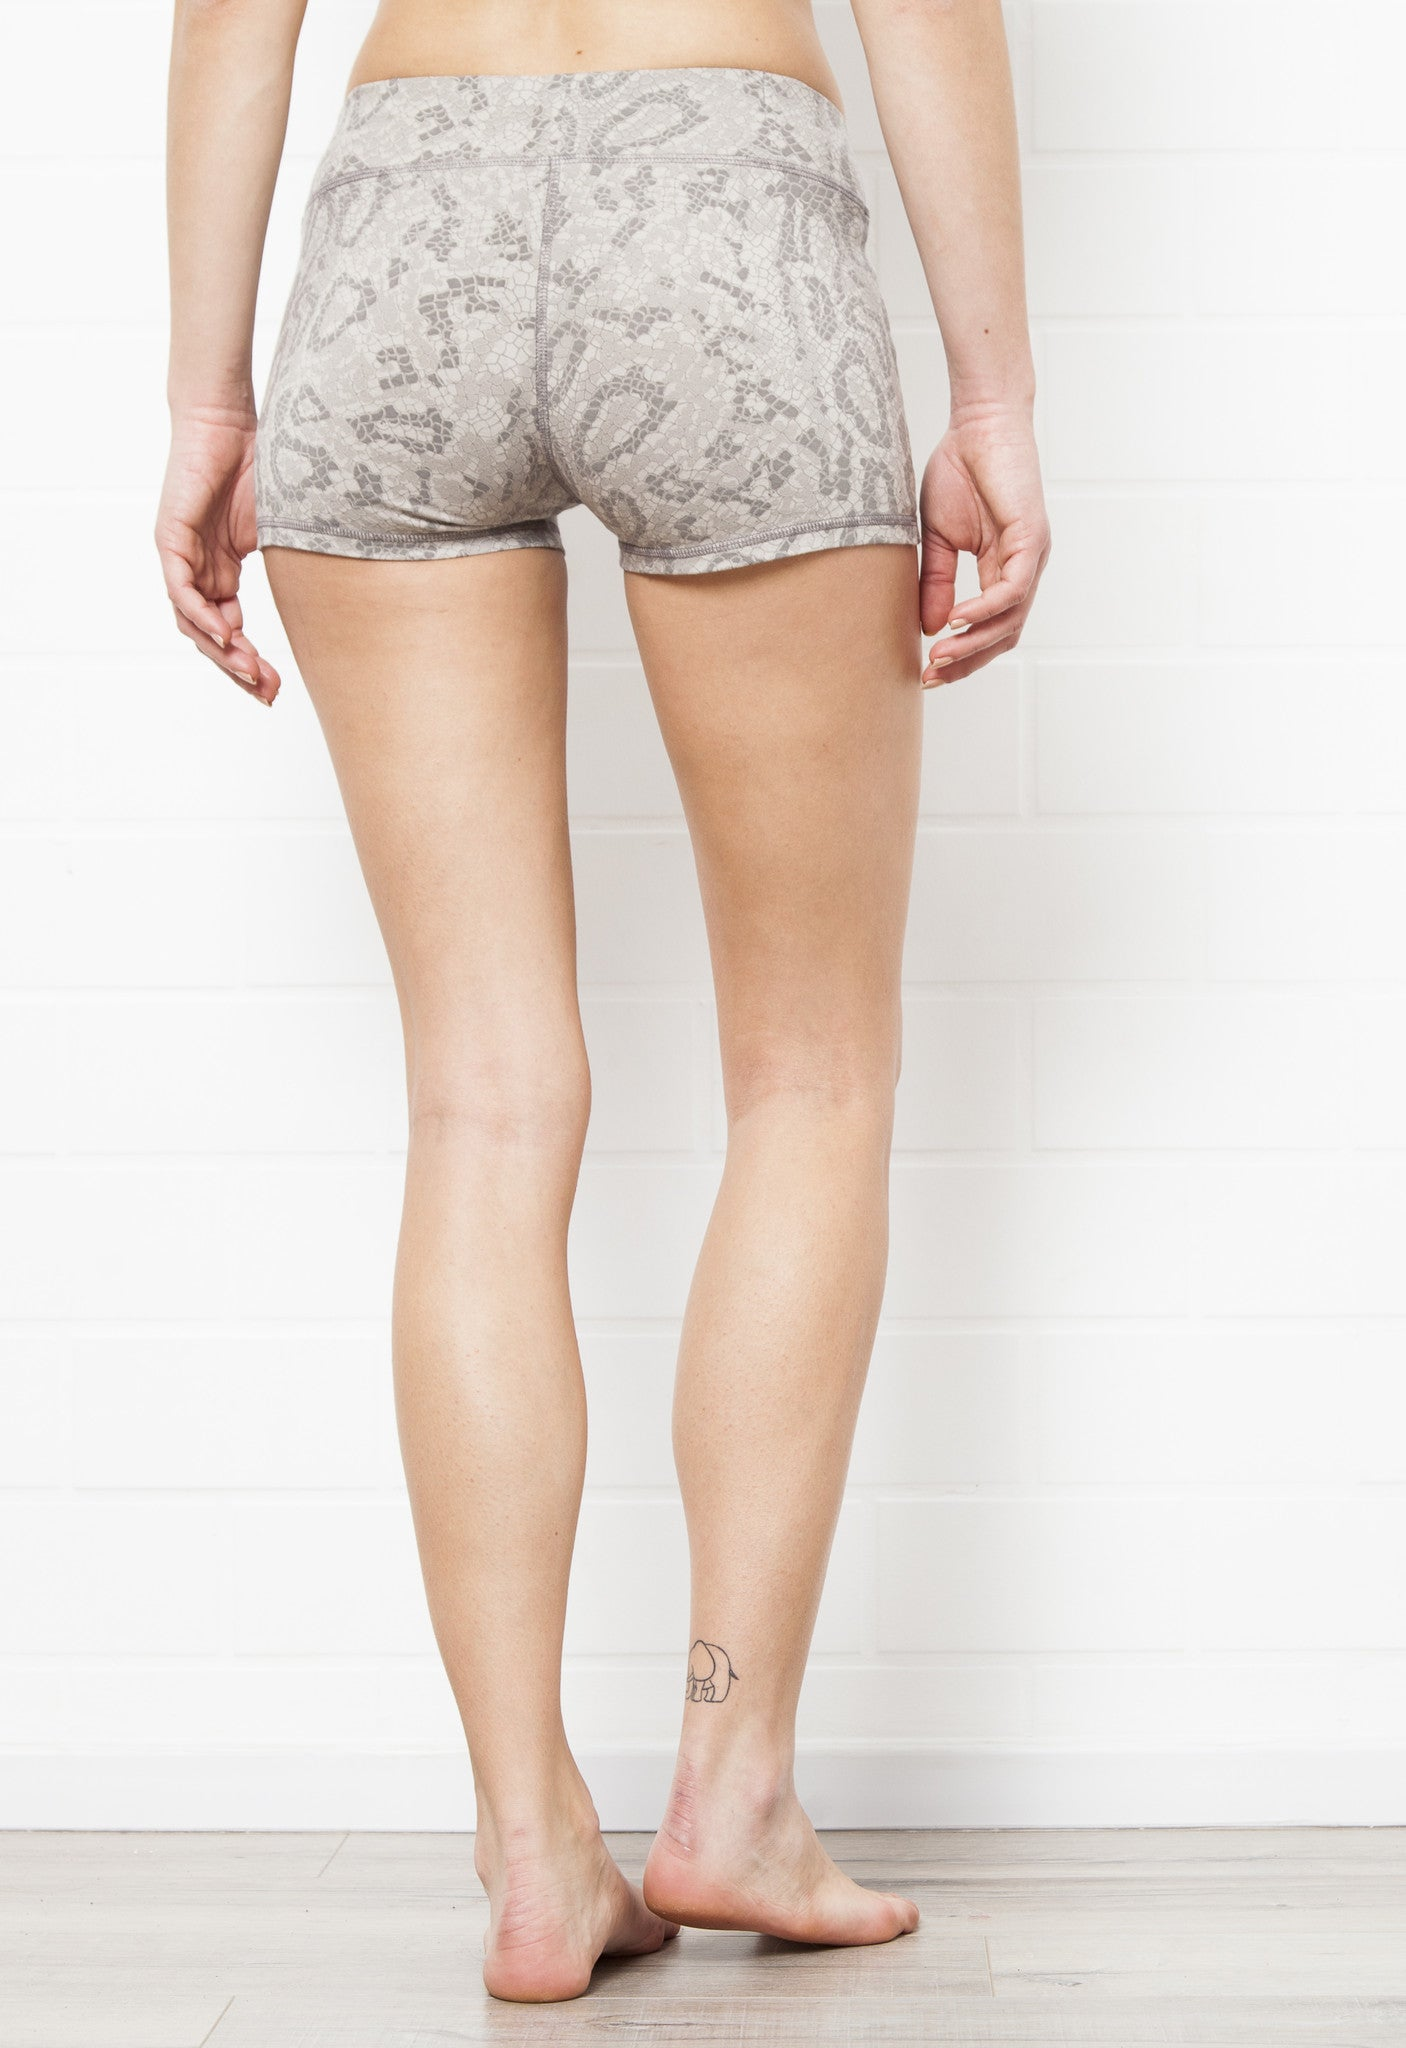 Yoga Hotpants - Grey Dragon - Beach Shorts - FUNKY SIMPLICITY